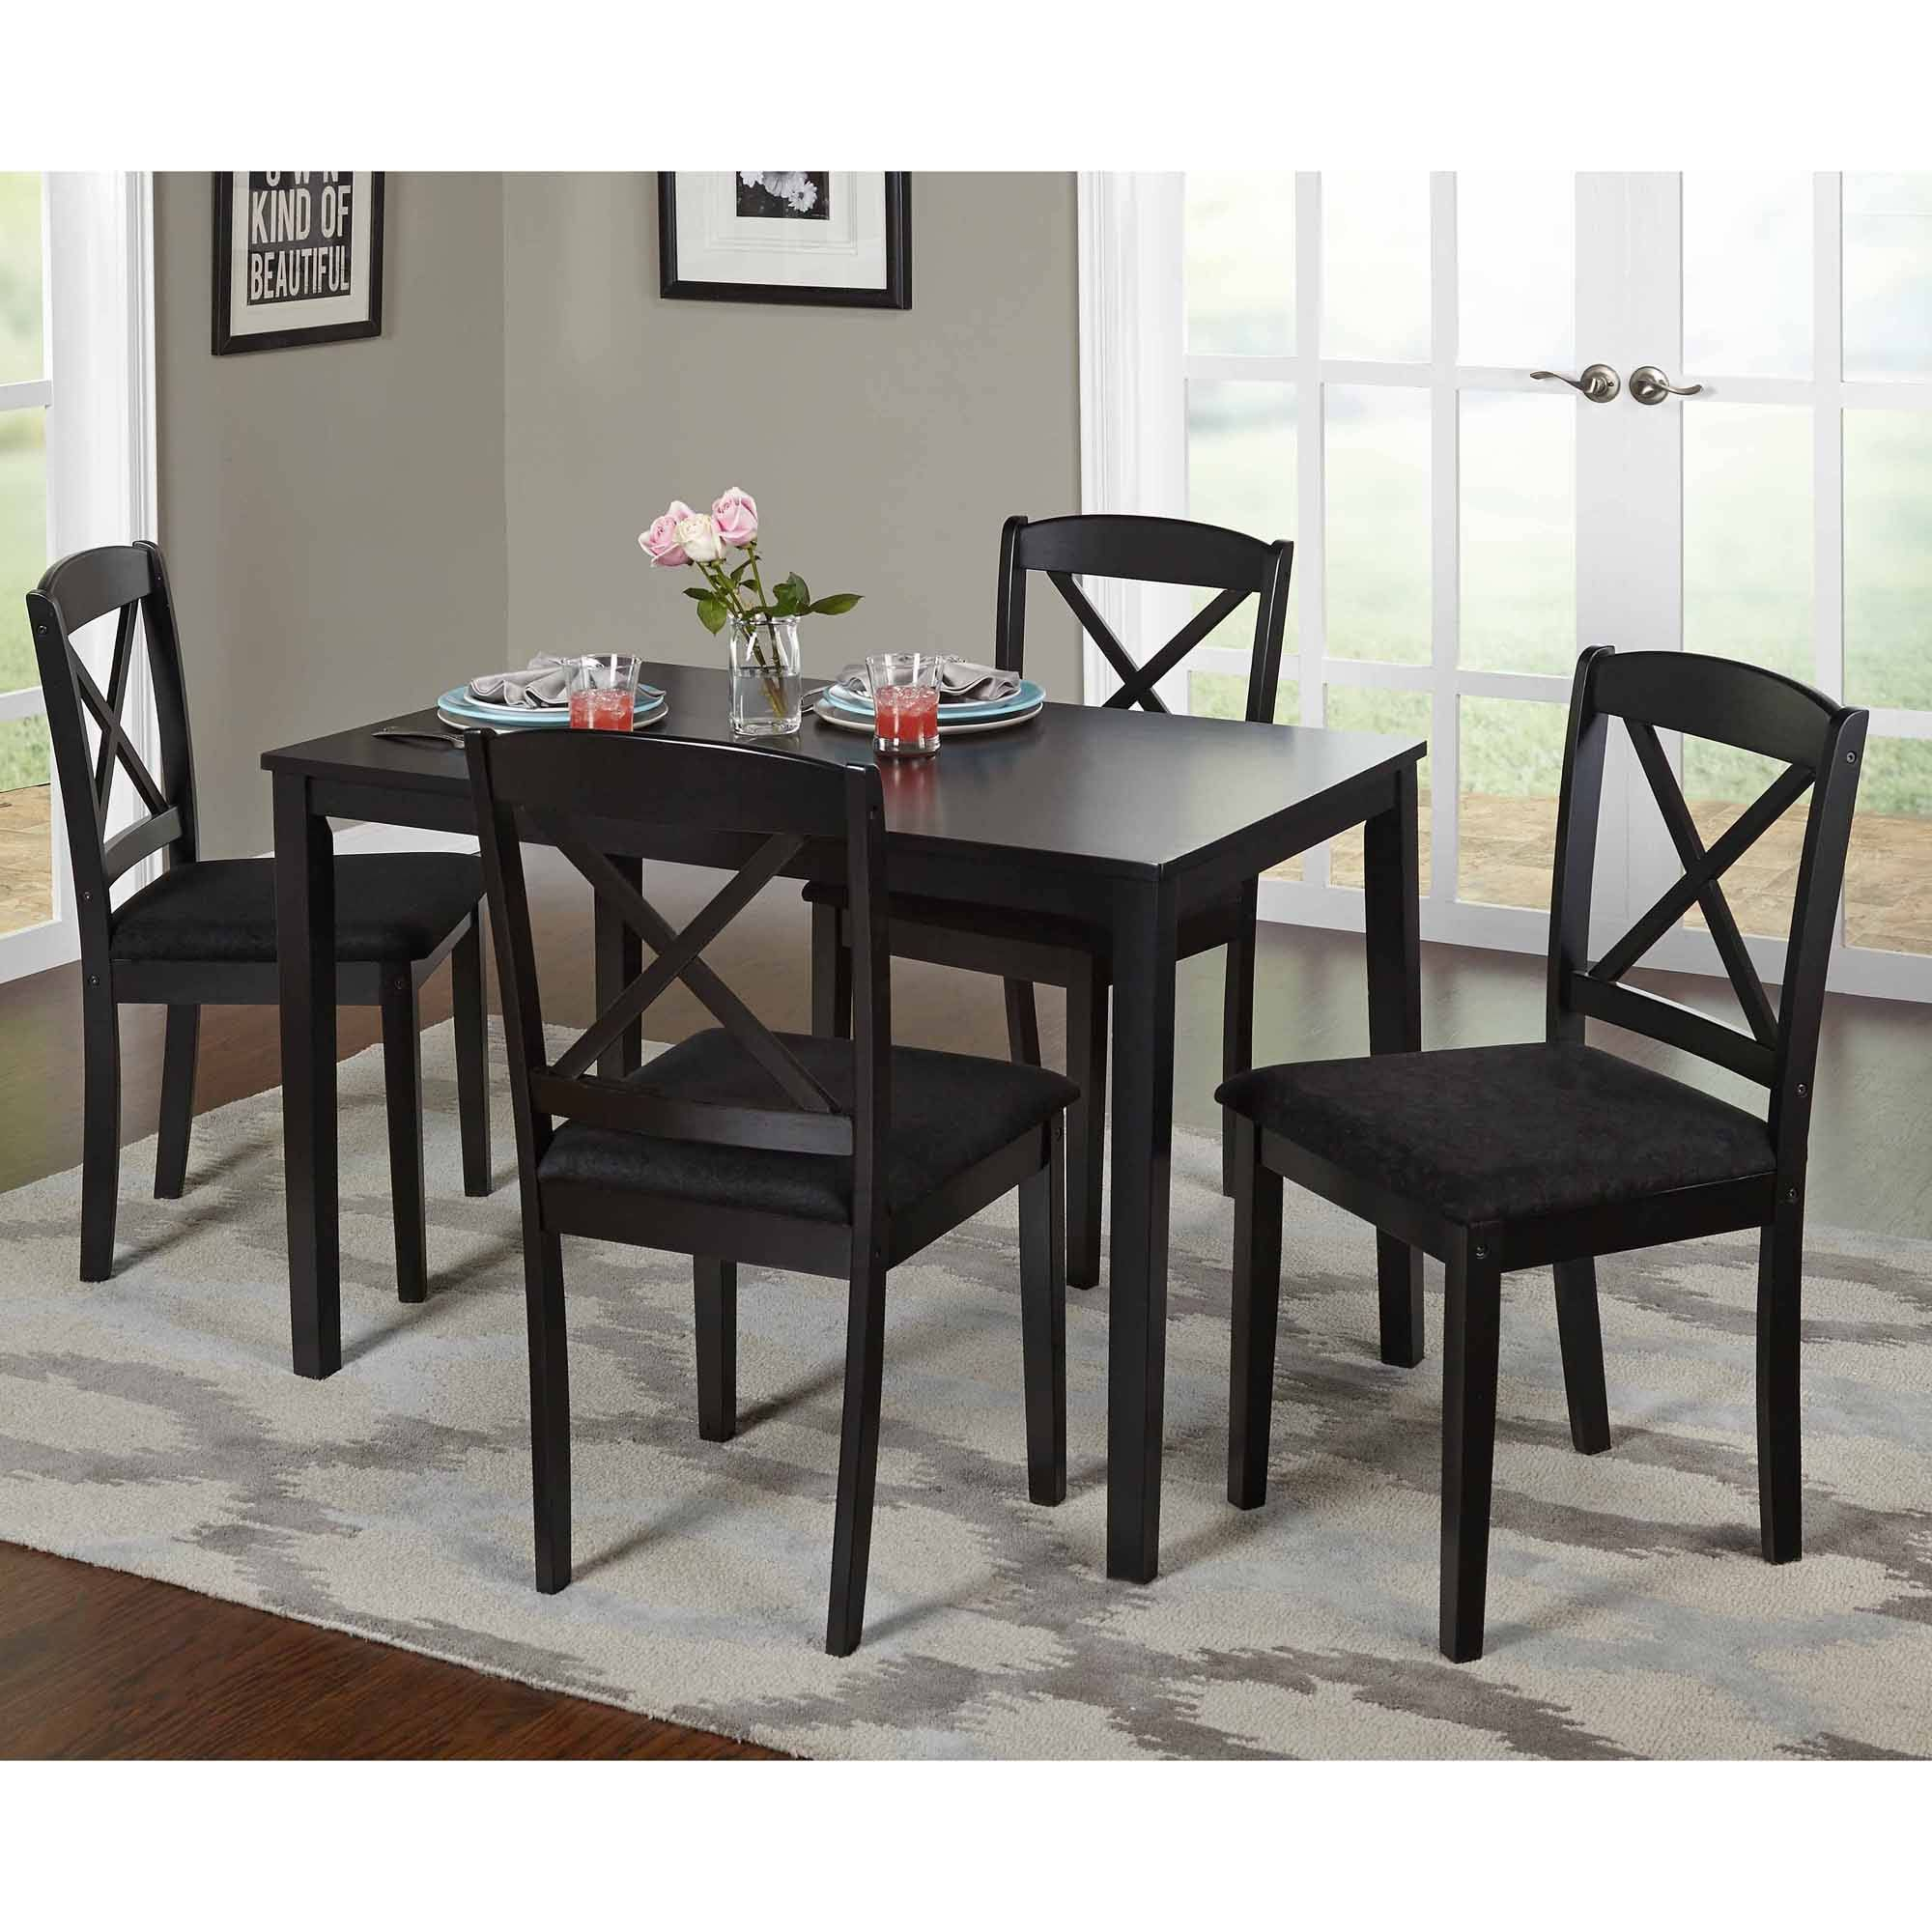 Tms mason crossback dining table and chairs set